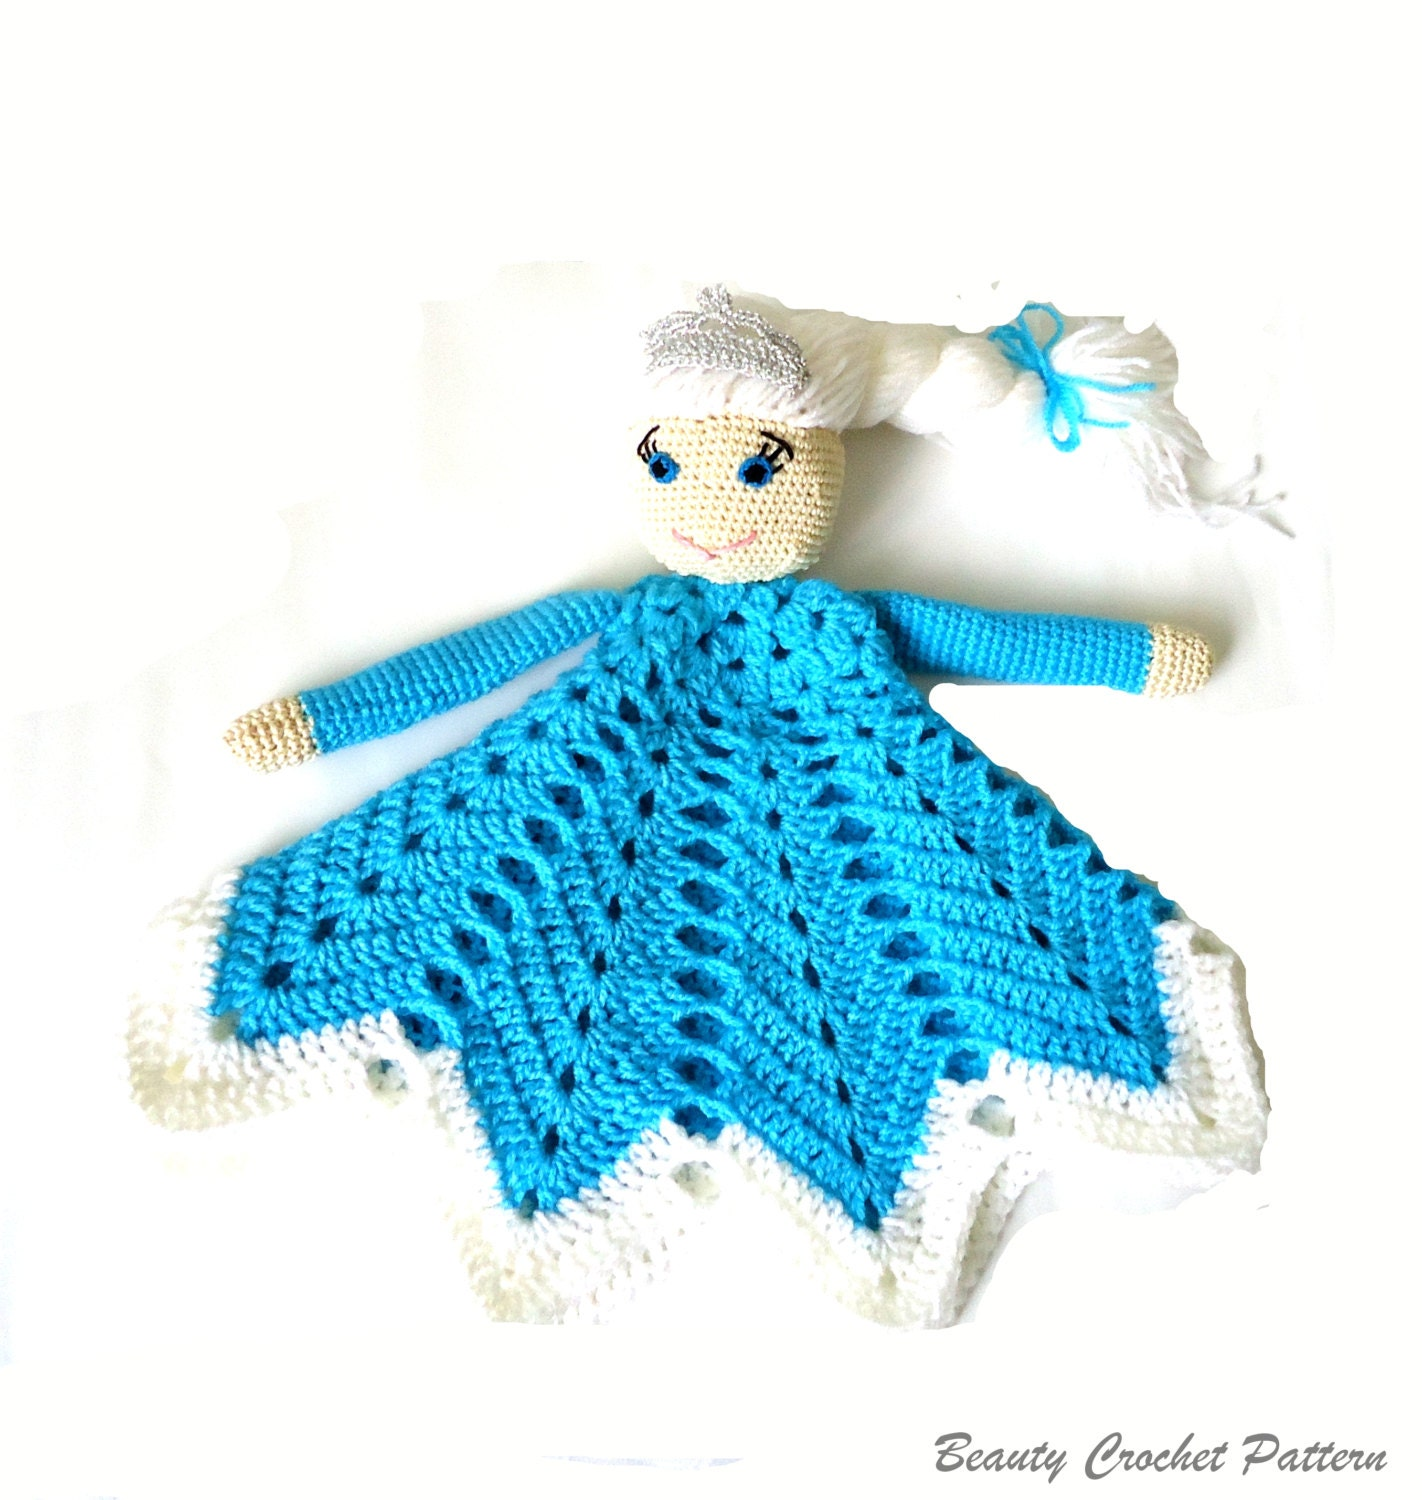 Crochet Pattern For Baby Security Blanket : Crochet Lovey Pattern Ice Queen Baby Security Blanket